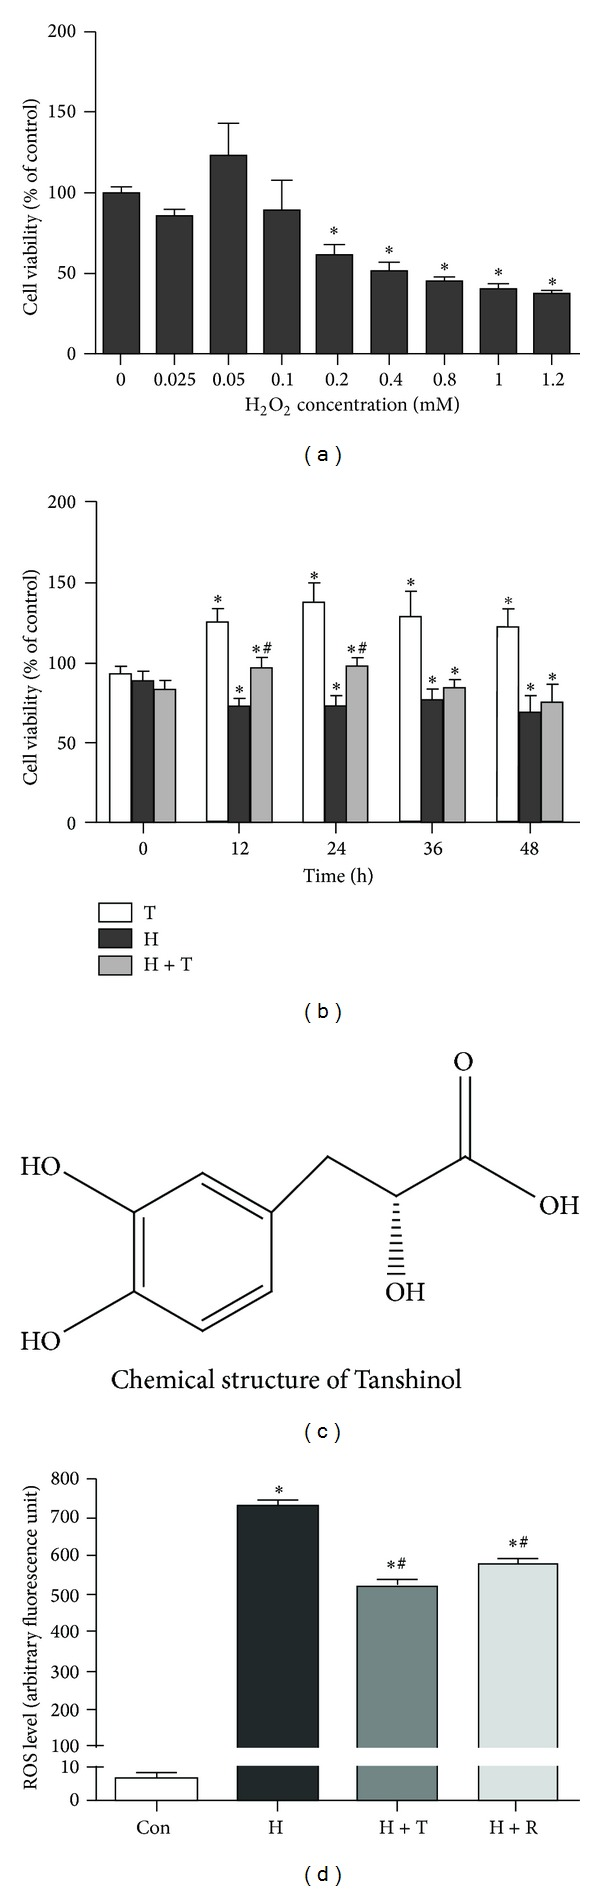 Protective effects of Tanshinol against H 2 O 2 -induced cell death and ROS generation. (a) Cell viability was measured by MTT assay in C2C12 cells exposed to H 2 O 2 at the indicated concentration for 24 h. (b) C2C12 cells were pretreated in the presence or absence of Tanshinol (1 μ M) for 1 h before the addition of H 2 O 2 (200 μ M) and were subsequently cultured for 0 h, 12 h, 24 h, 36 h, and 48 h, respectively. (c) The chemical structure of Tanshinol consists of polyphenolic hydroxyl groups. (d) C2C12 cells were pretreated as described in (b), followed by H 2 O 2 (200 μ M) for 24 h, and the oxidative status of C2C12 cells was quantified by DCHF-DA to monitor the emitted fluorescence intensity resulting from intracellular oxidation using flow cytometry. Note: (1) Con (vehicle control); (2) H (H 2 O 2 ); (3) H + T (H 2 O 2 + Tanshinol); (4) H + R (H 2 O 2 + Resveratrol). Data are given as mean ± SEM of at least three independent experiments. * P